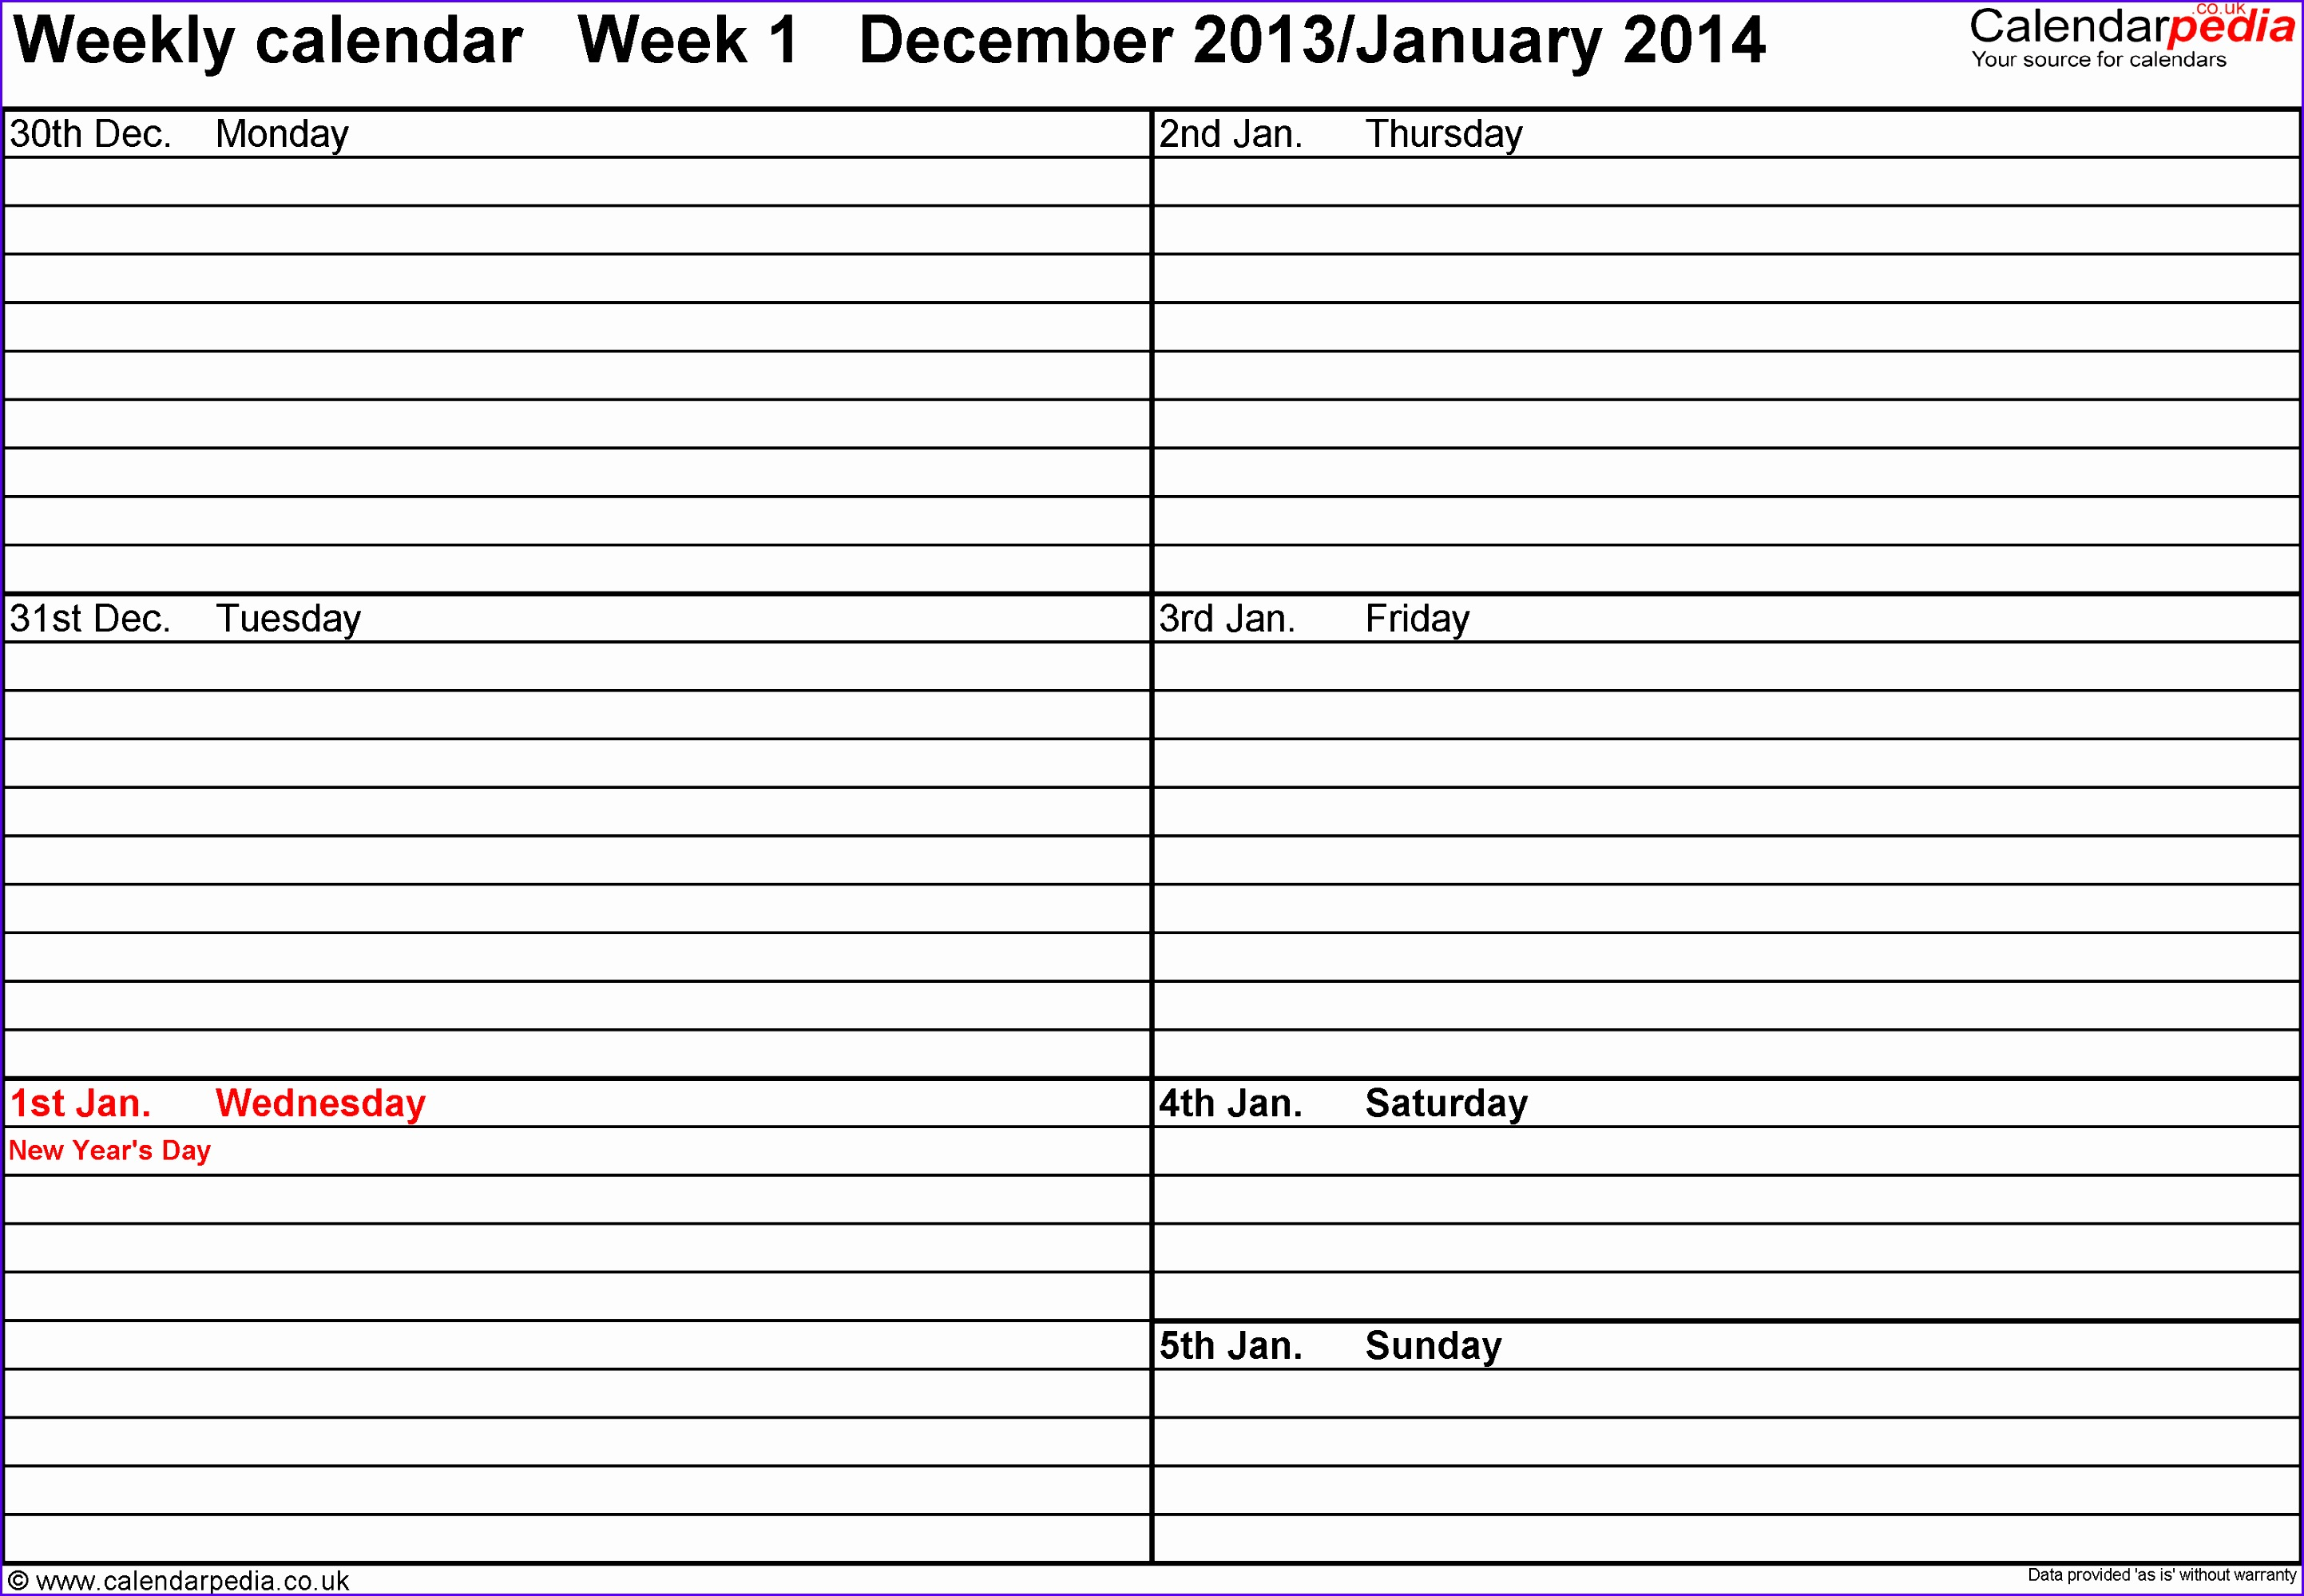 Word template 3 Weekly calendar 2014 landscape orientation 53 pages 1 calendar 28851999